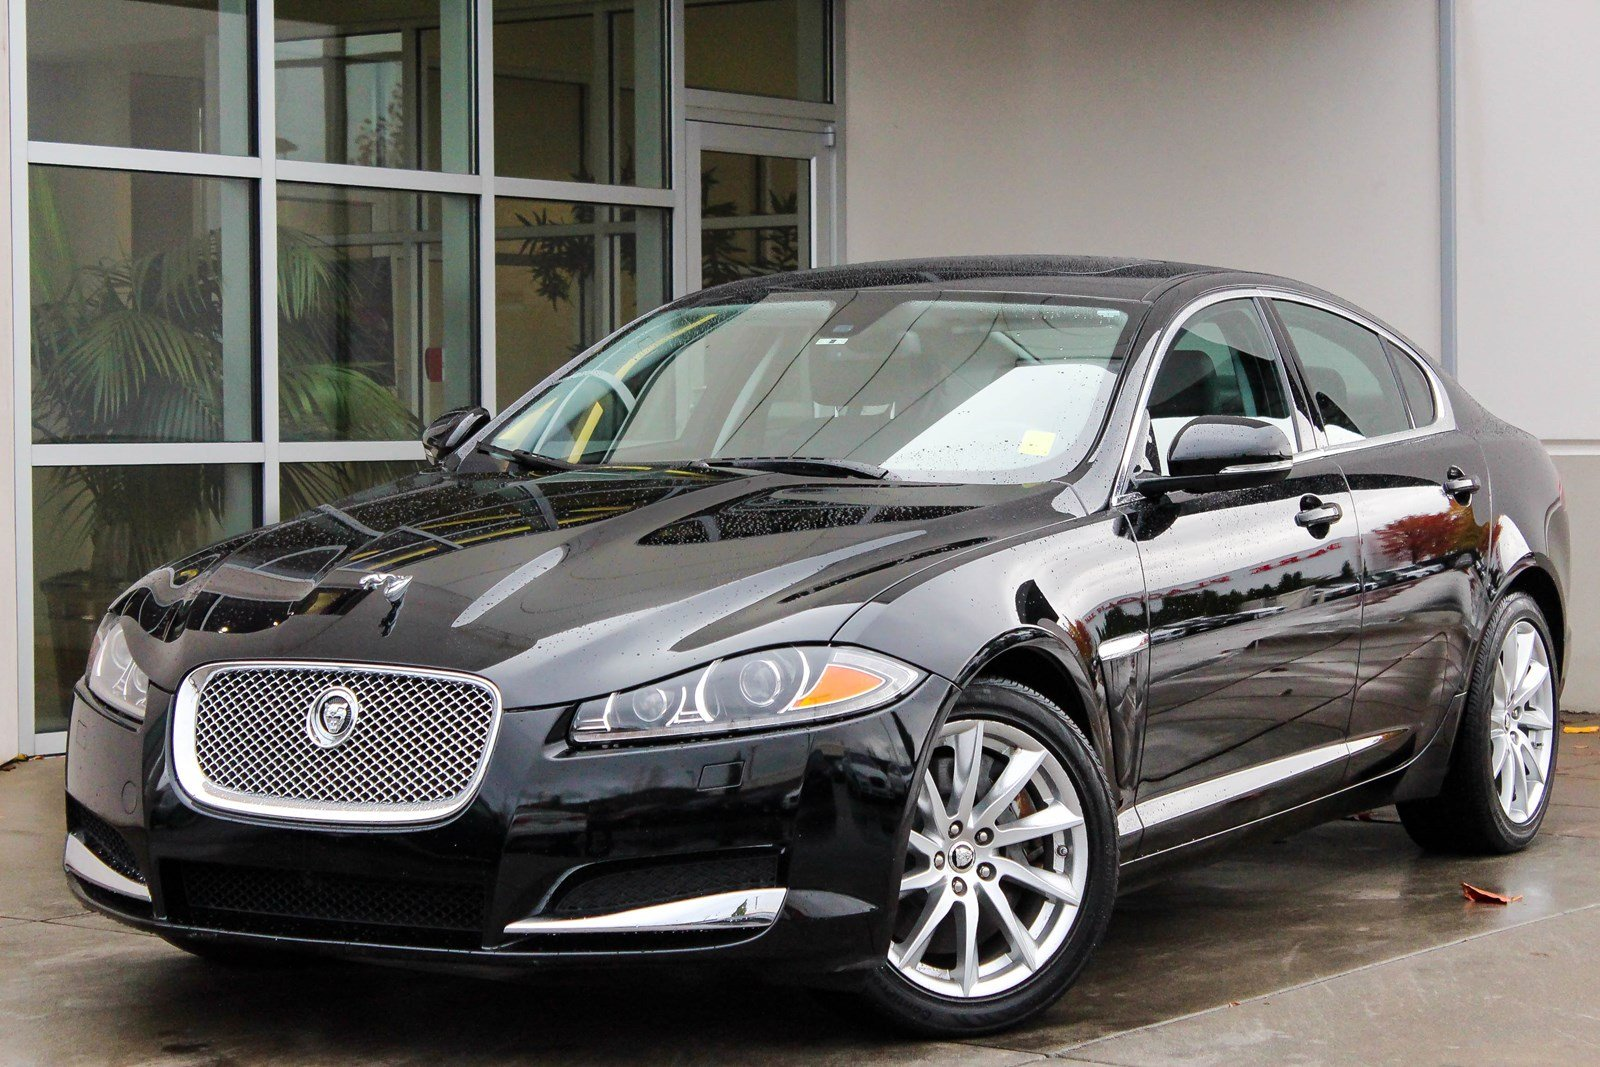 Pre-Owned 2012 Jaguar XF 4DR SDN XF